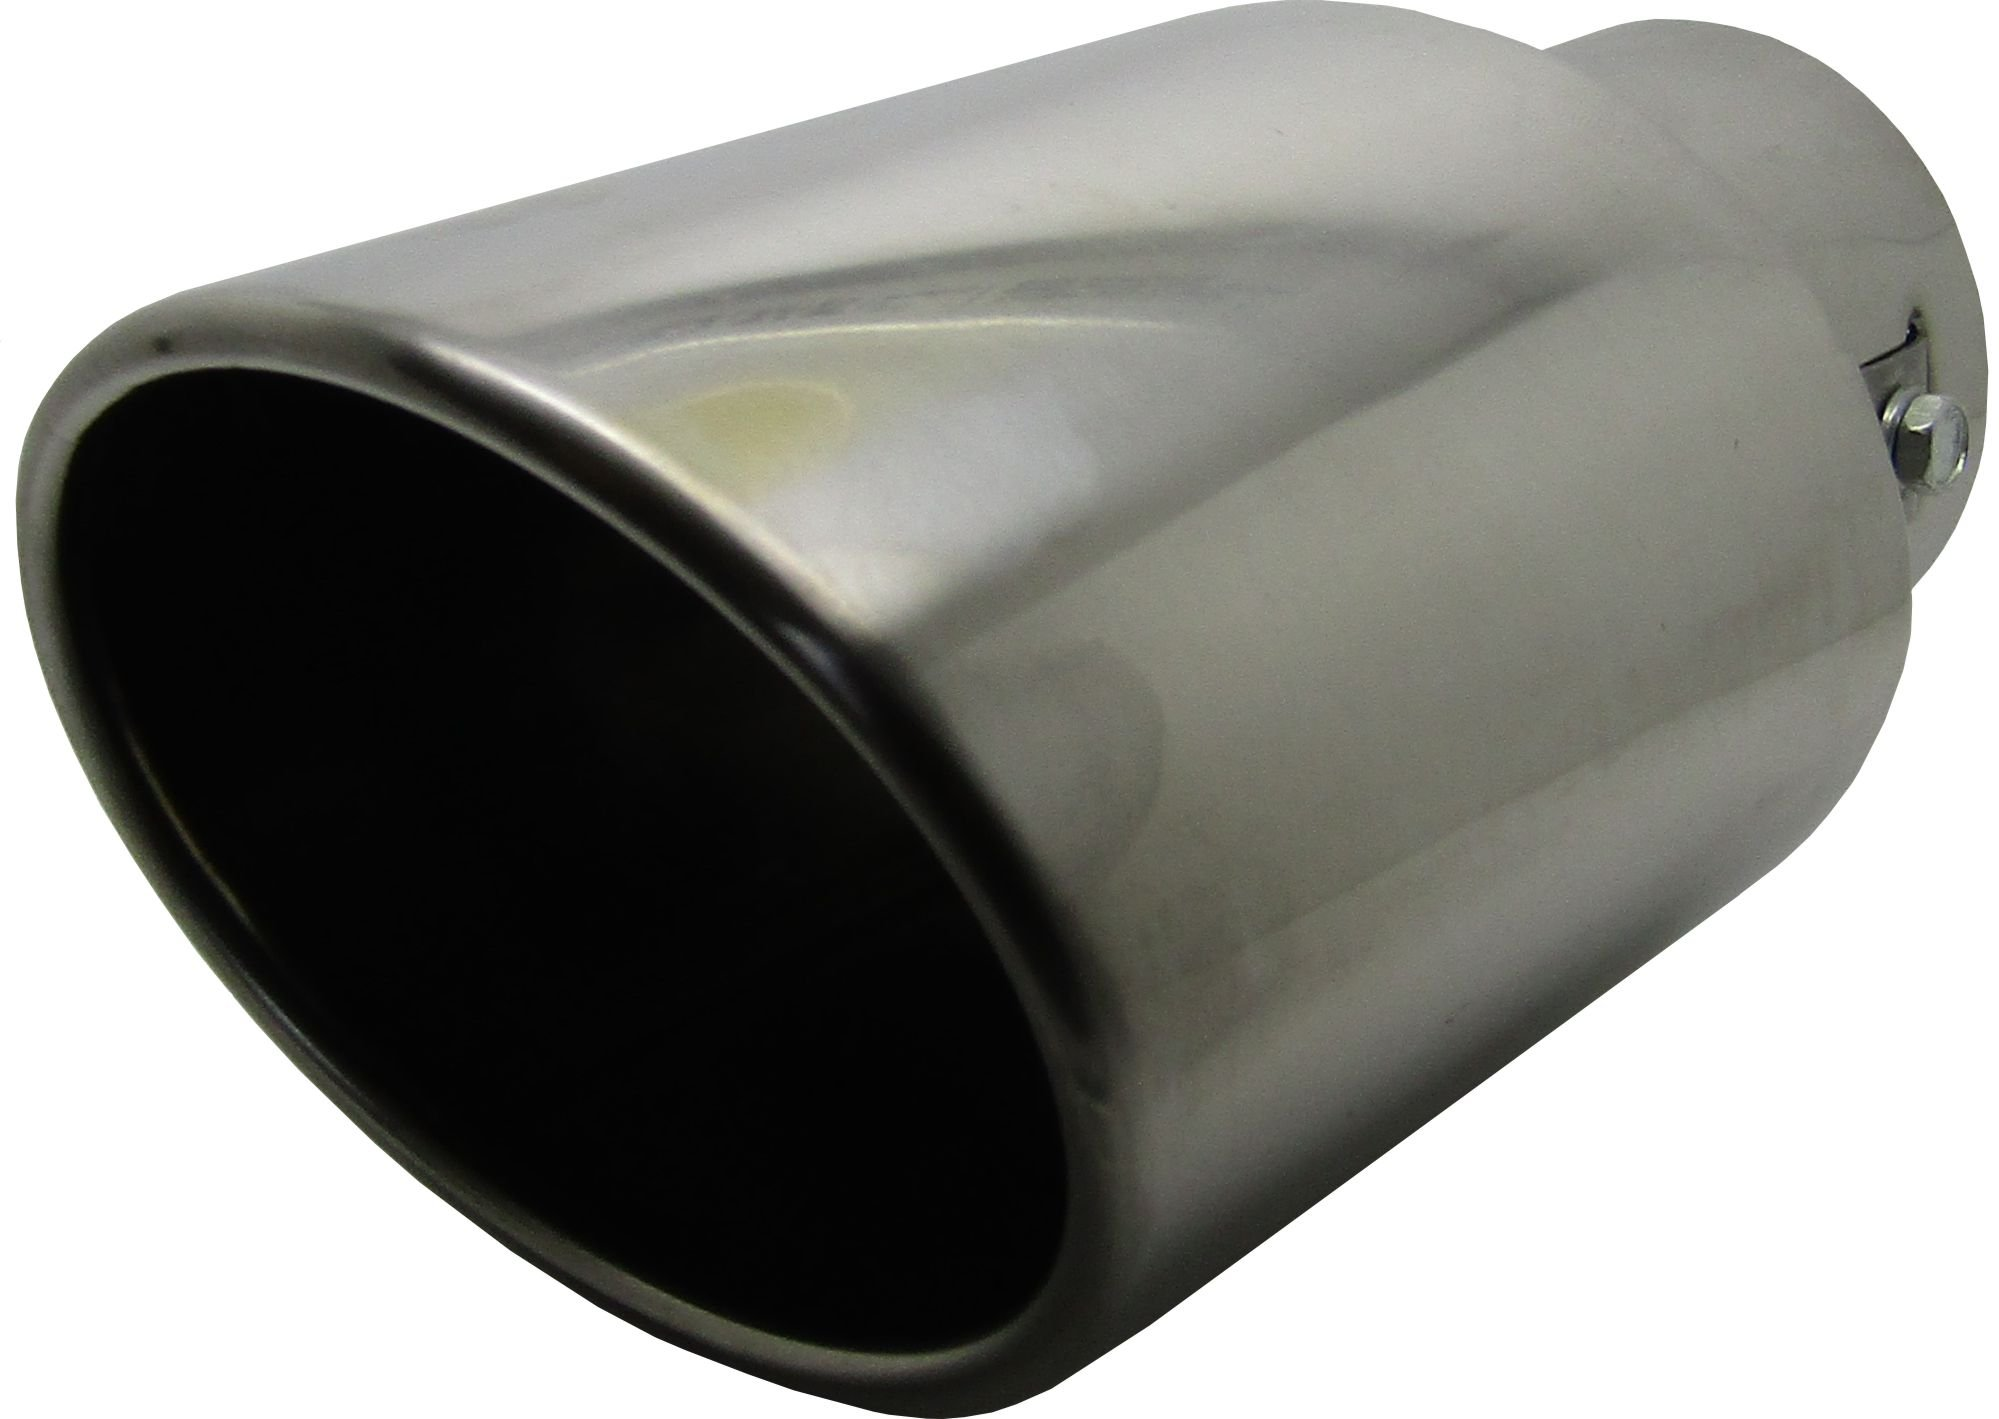 Boloromo 560047997 Universal Car Twin Double Exhaust End Pipes Muffler Tail Tips Trim Chrome